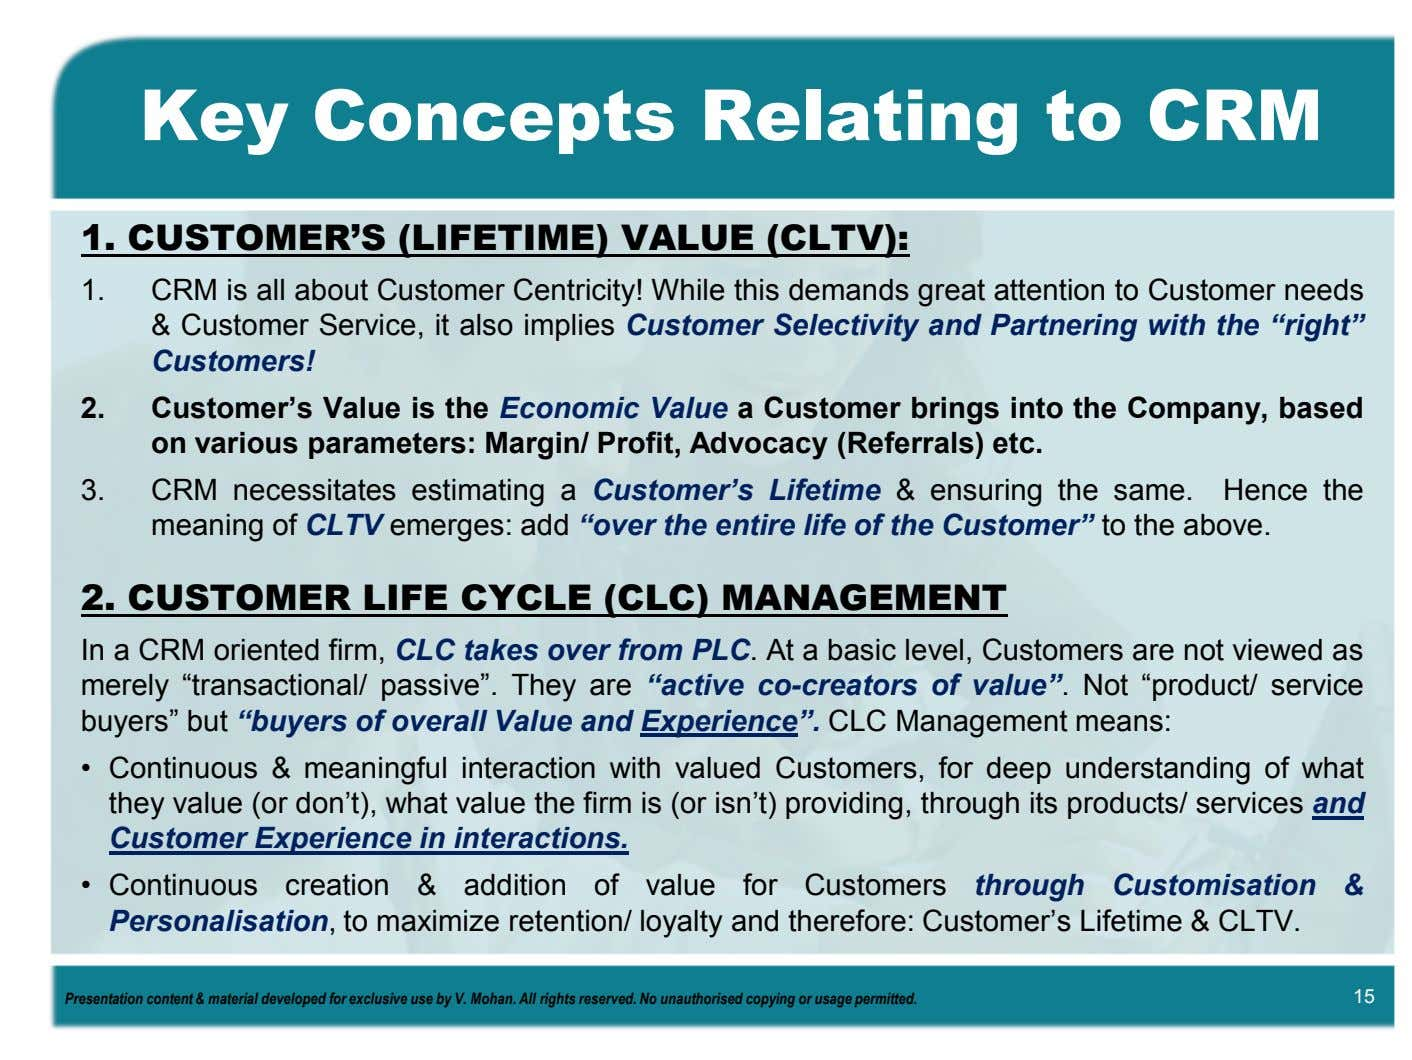 Key Concepts Relating to CRM 1. CUSTOMER'S (LIFETIME) VALUE (CLTV): 1. CRM is all about